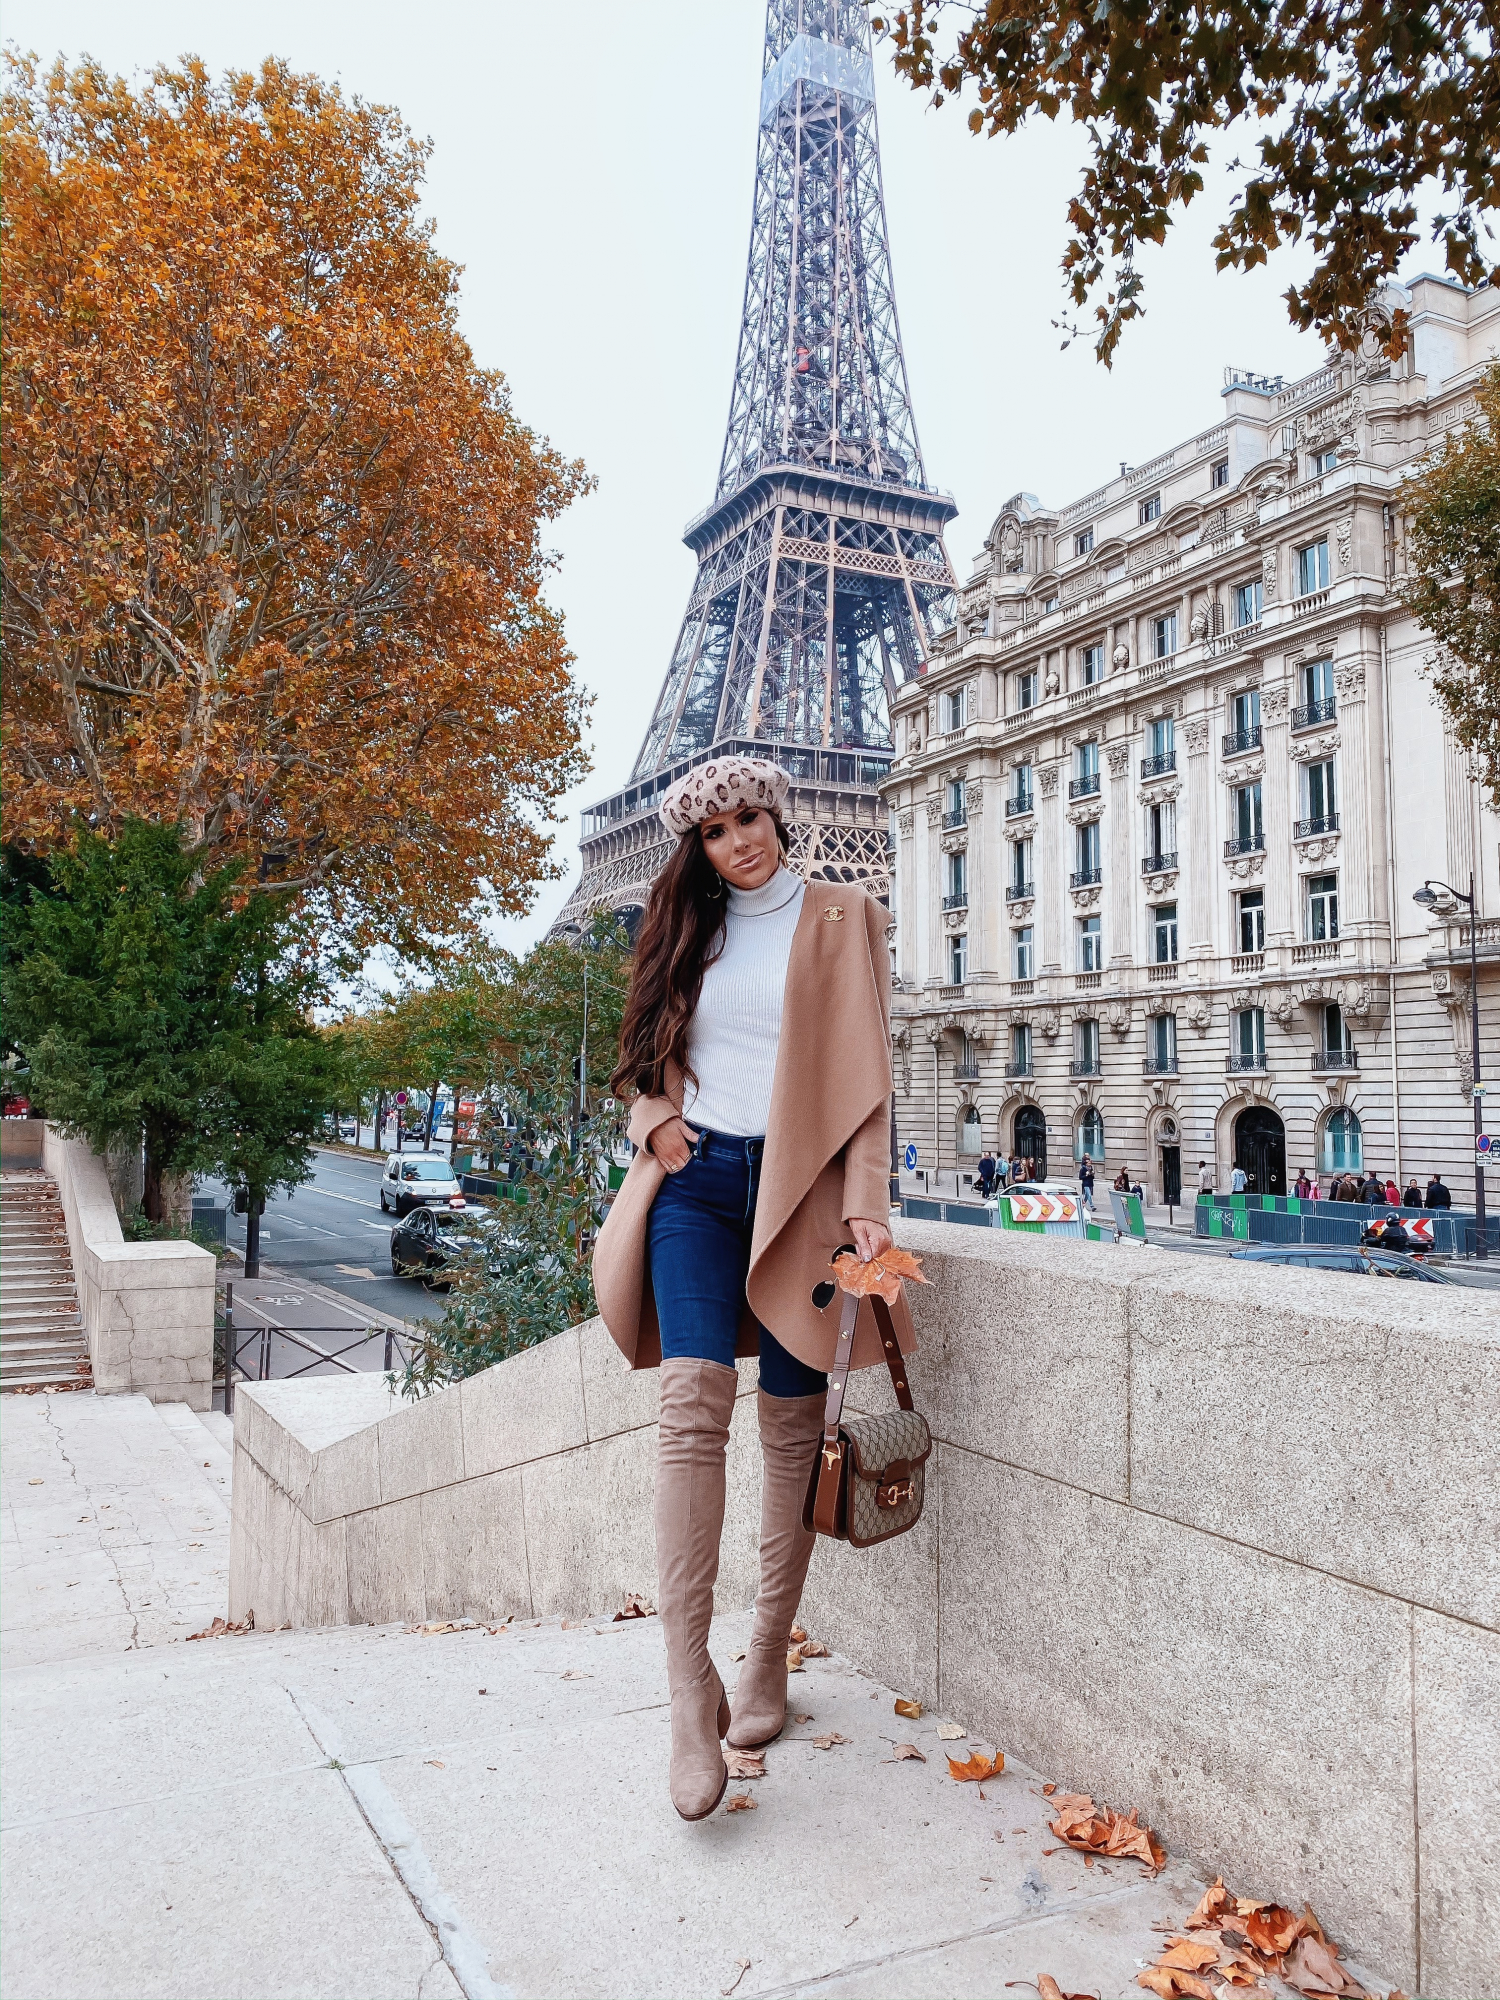 paris street style pinterest instagram fashion blogger, emily gemma | A YEAR IN REVIEW : MASSIVE 2019 INSTAGRAM RECAP by popular Oklahoma life and style blog, The Sweetest Thing: image of a woman standing by the Eiffel Tower and wearing a Revolve Samia Coatigan Soia & Kyo brand:Soia & Kyo, Express Ribbed Turtleneck Sweater, Express High Waisted Denim Perfect Lift Dark Wash Ankle Leggings, Zappos Steve Madden over the knee boots, Anthropologie leopard print beret, Gucci Gucci 1955 Horsebit shoulder bag, Nordstrom 50mm Retro Inspired Round Metal Sunglasses RAY-BAN, Nordstrom Lip Cheat Lip Liner CHARLOTTE TILBURY, Nordstrom Hot Lips Lipstick CHARLOTTE TILBURY, and Nordstrom Gloss Luxe Moisturizing Lipgloss TOM FORD.